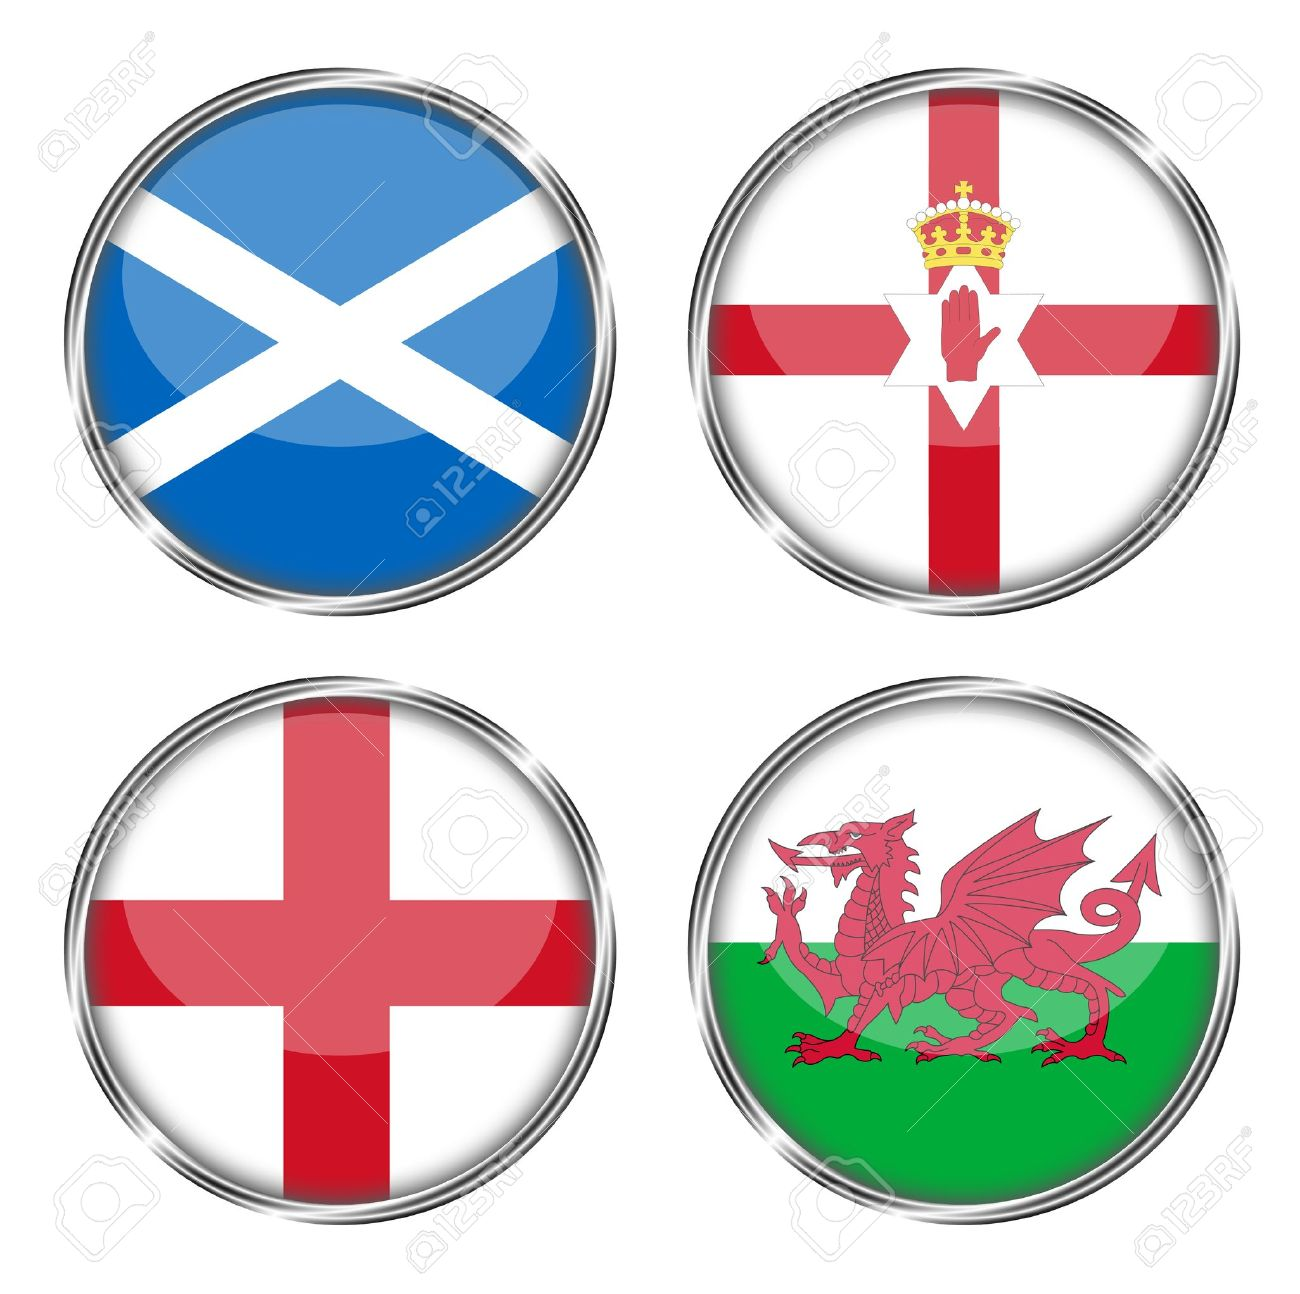 button flag of scotland norther ireland england wales stock